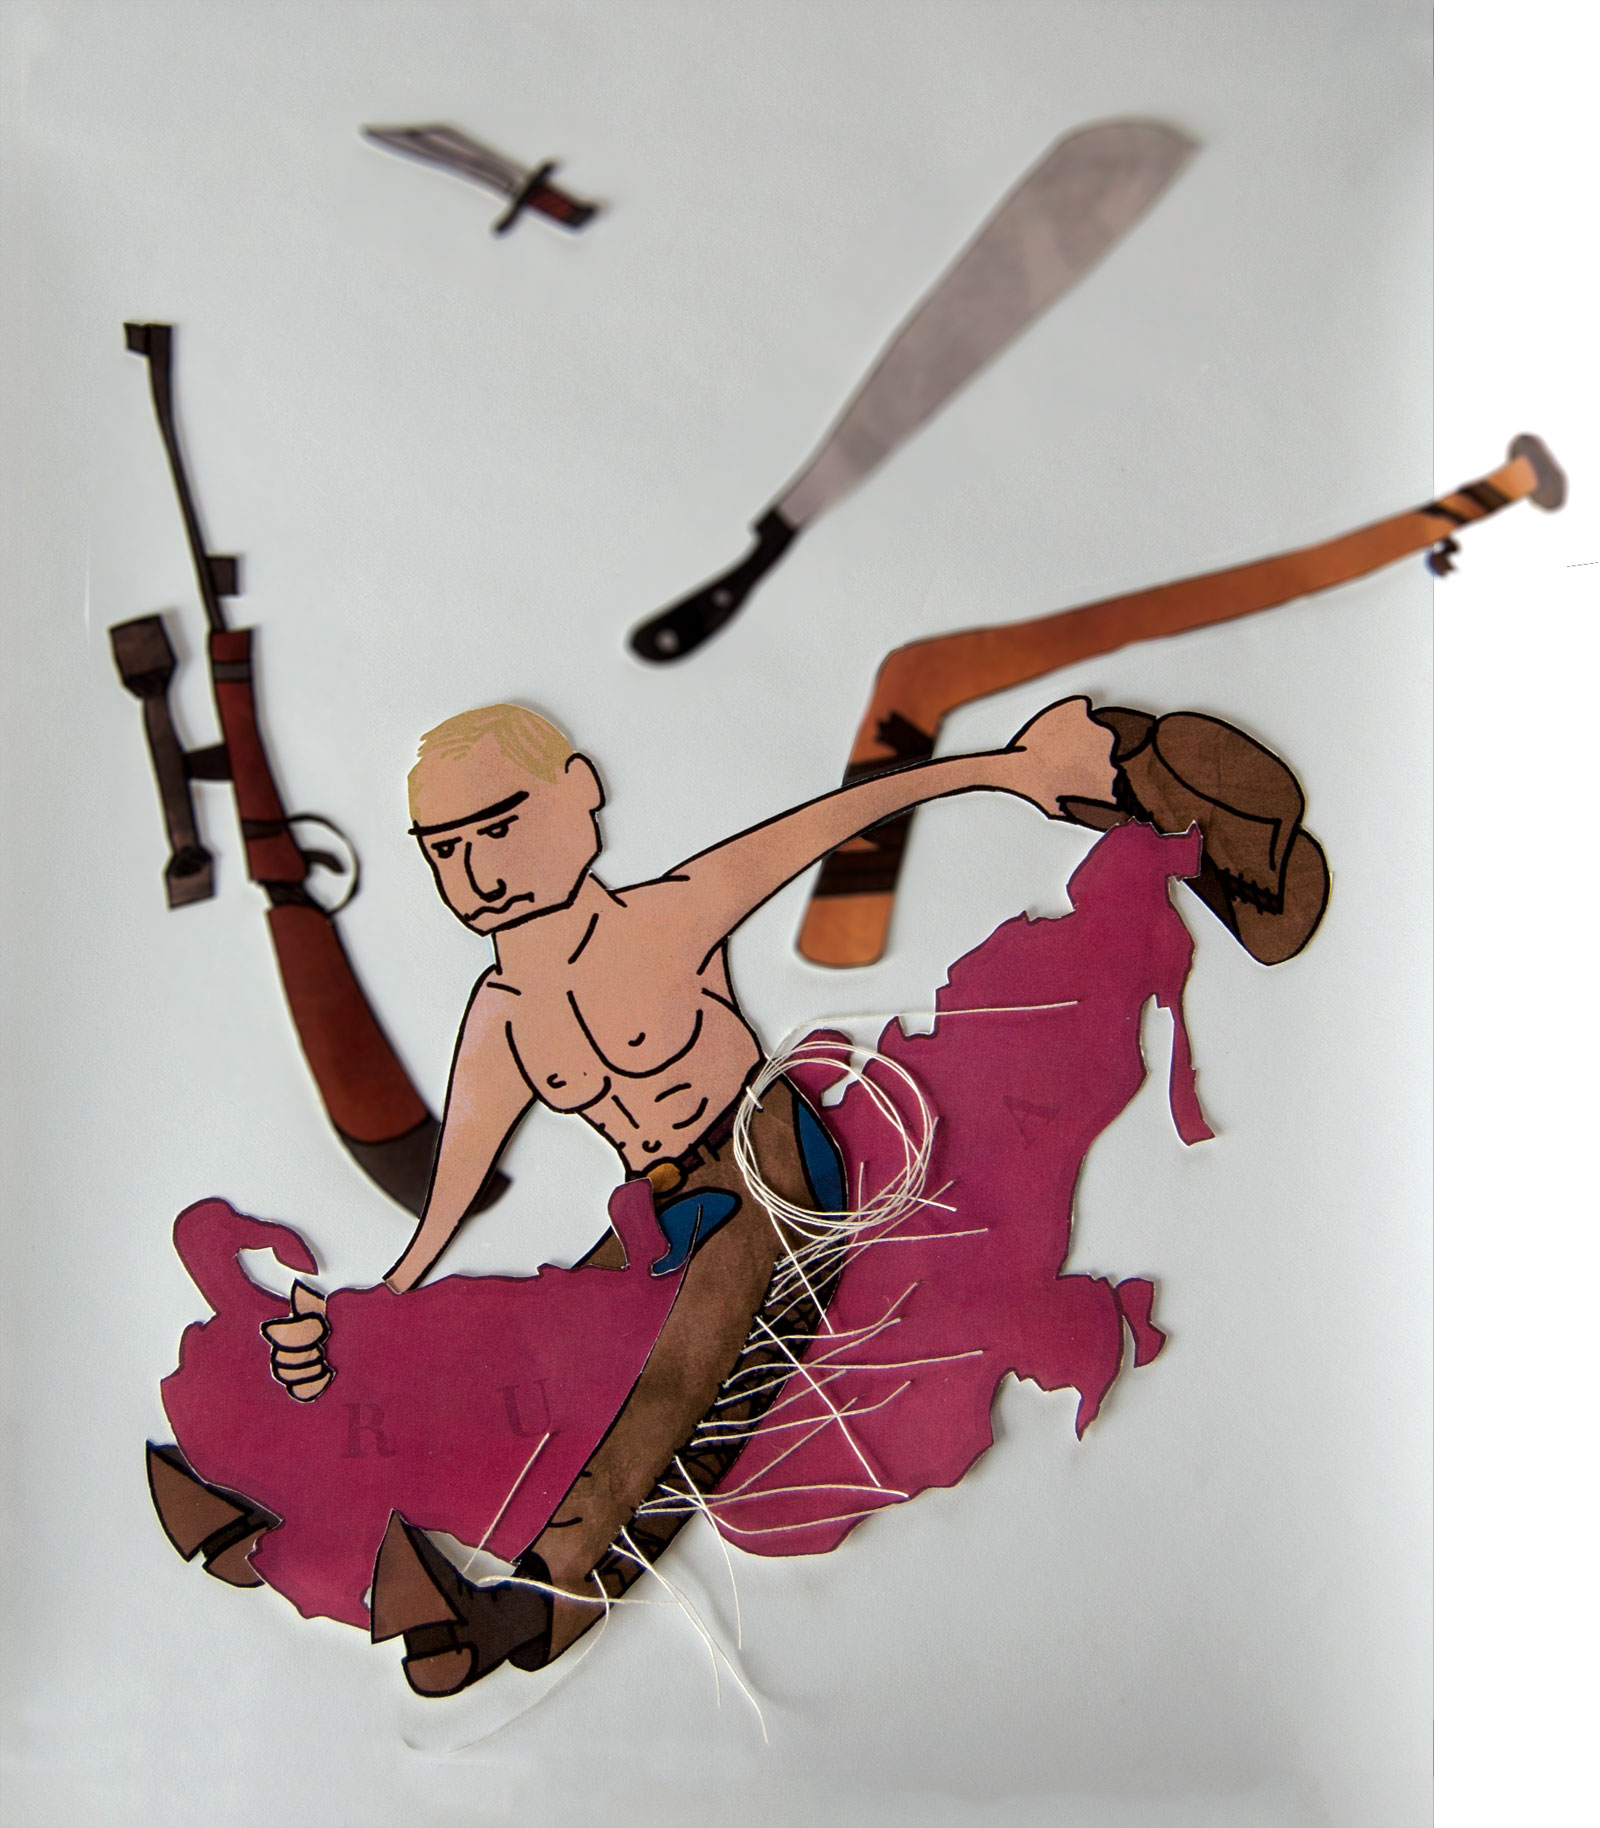 Putin illustration detail